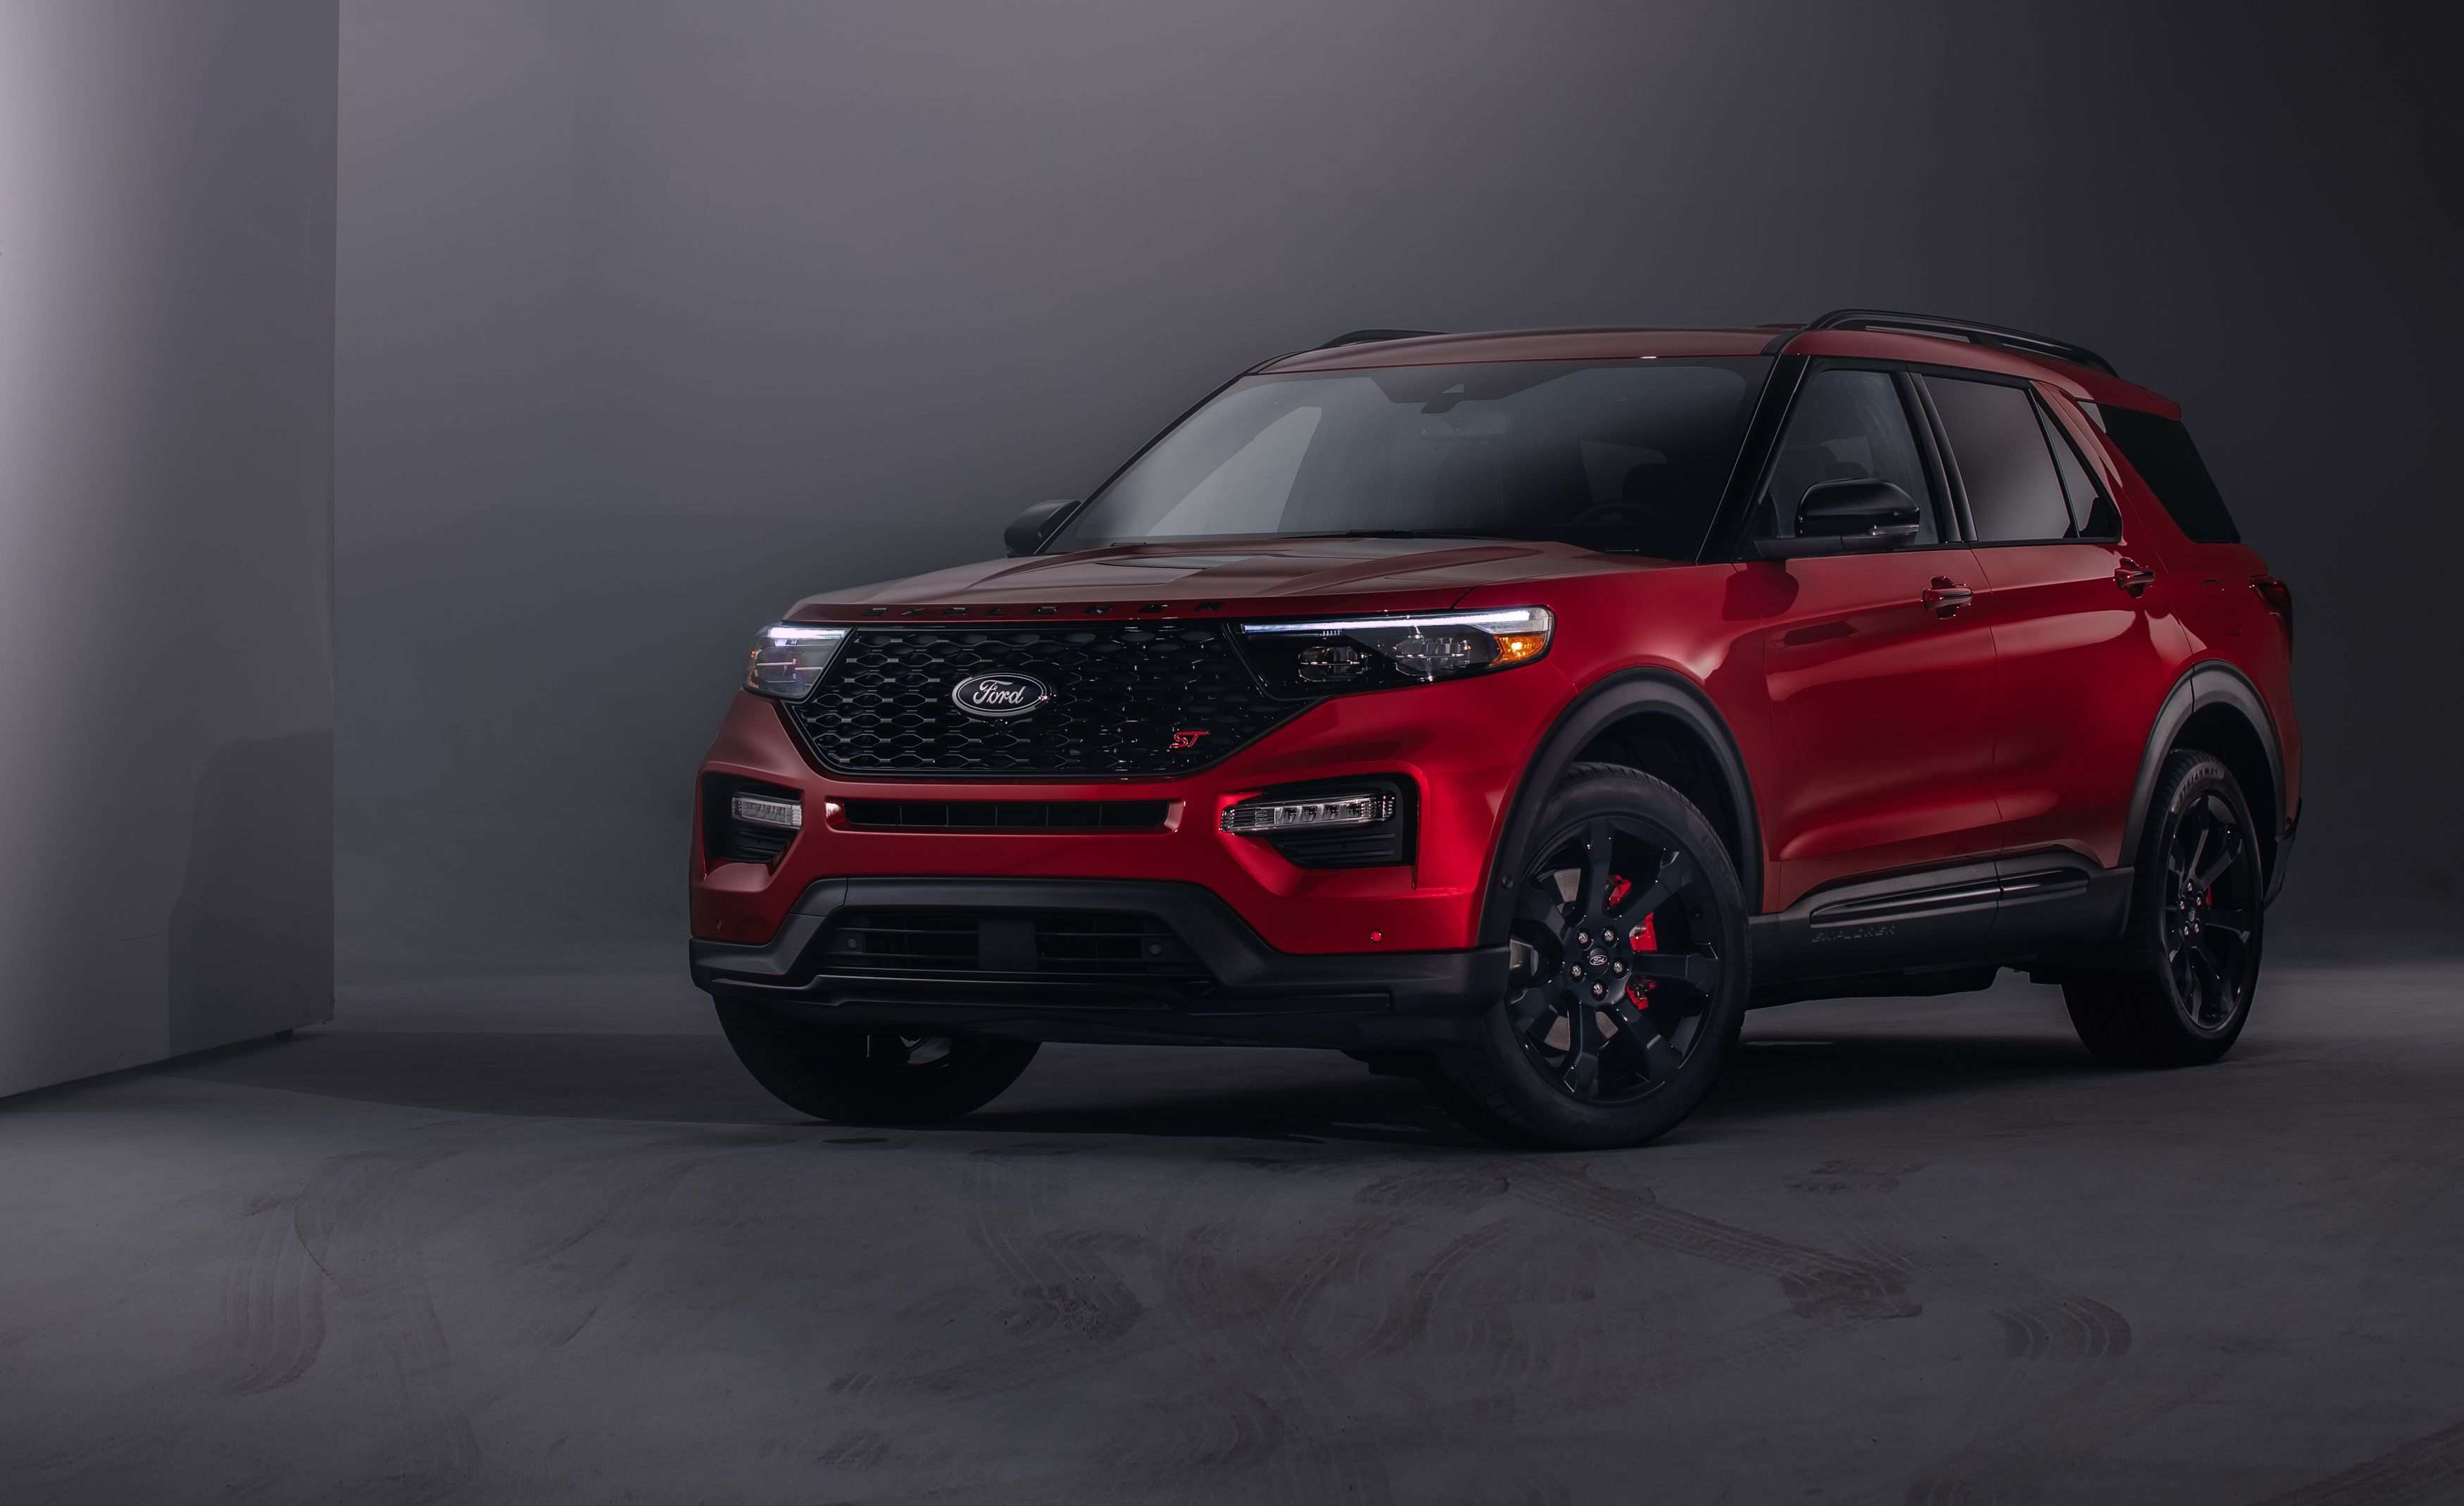 40 All New 2020 Ford Mustangand Redesign